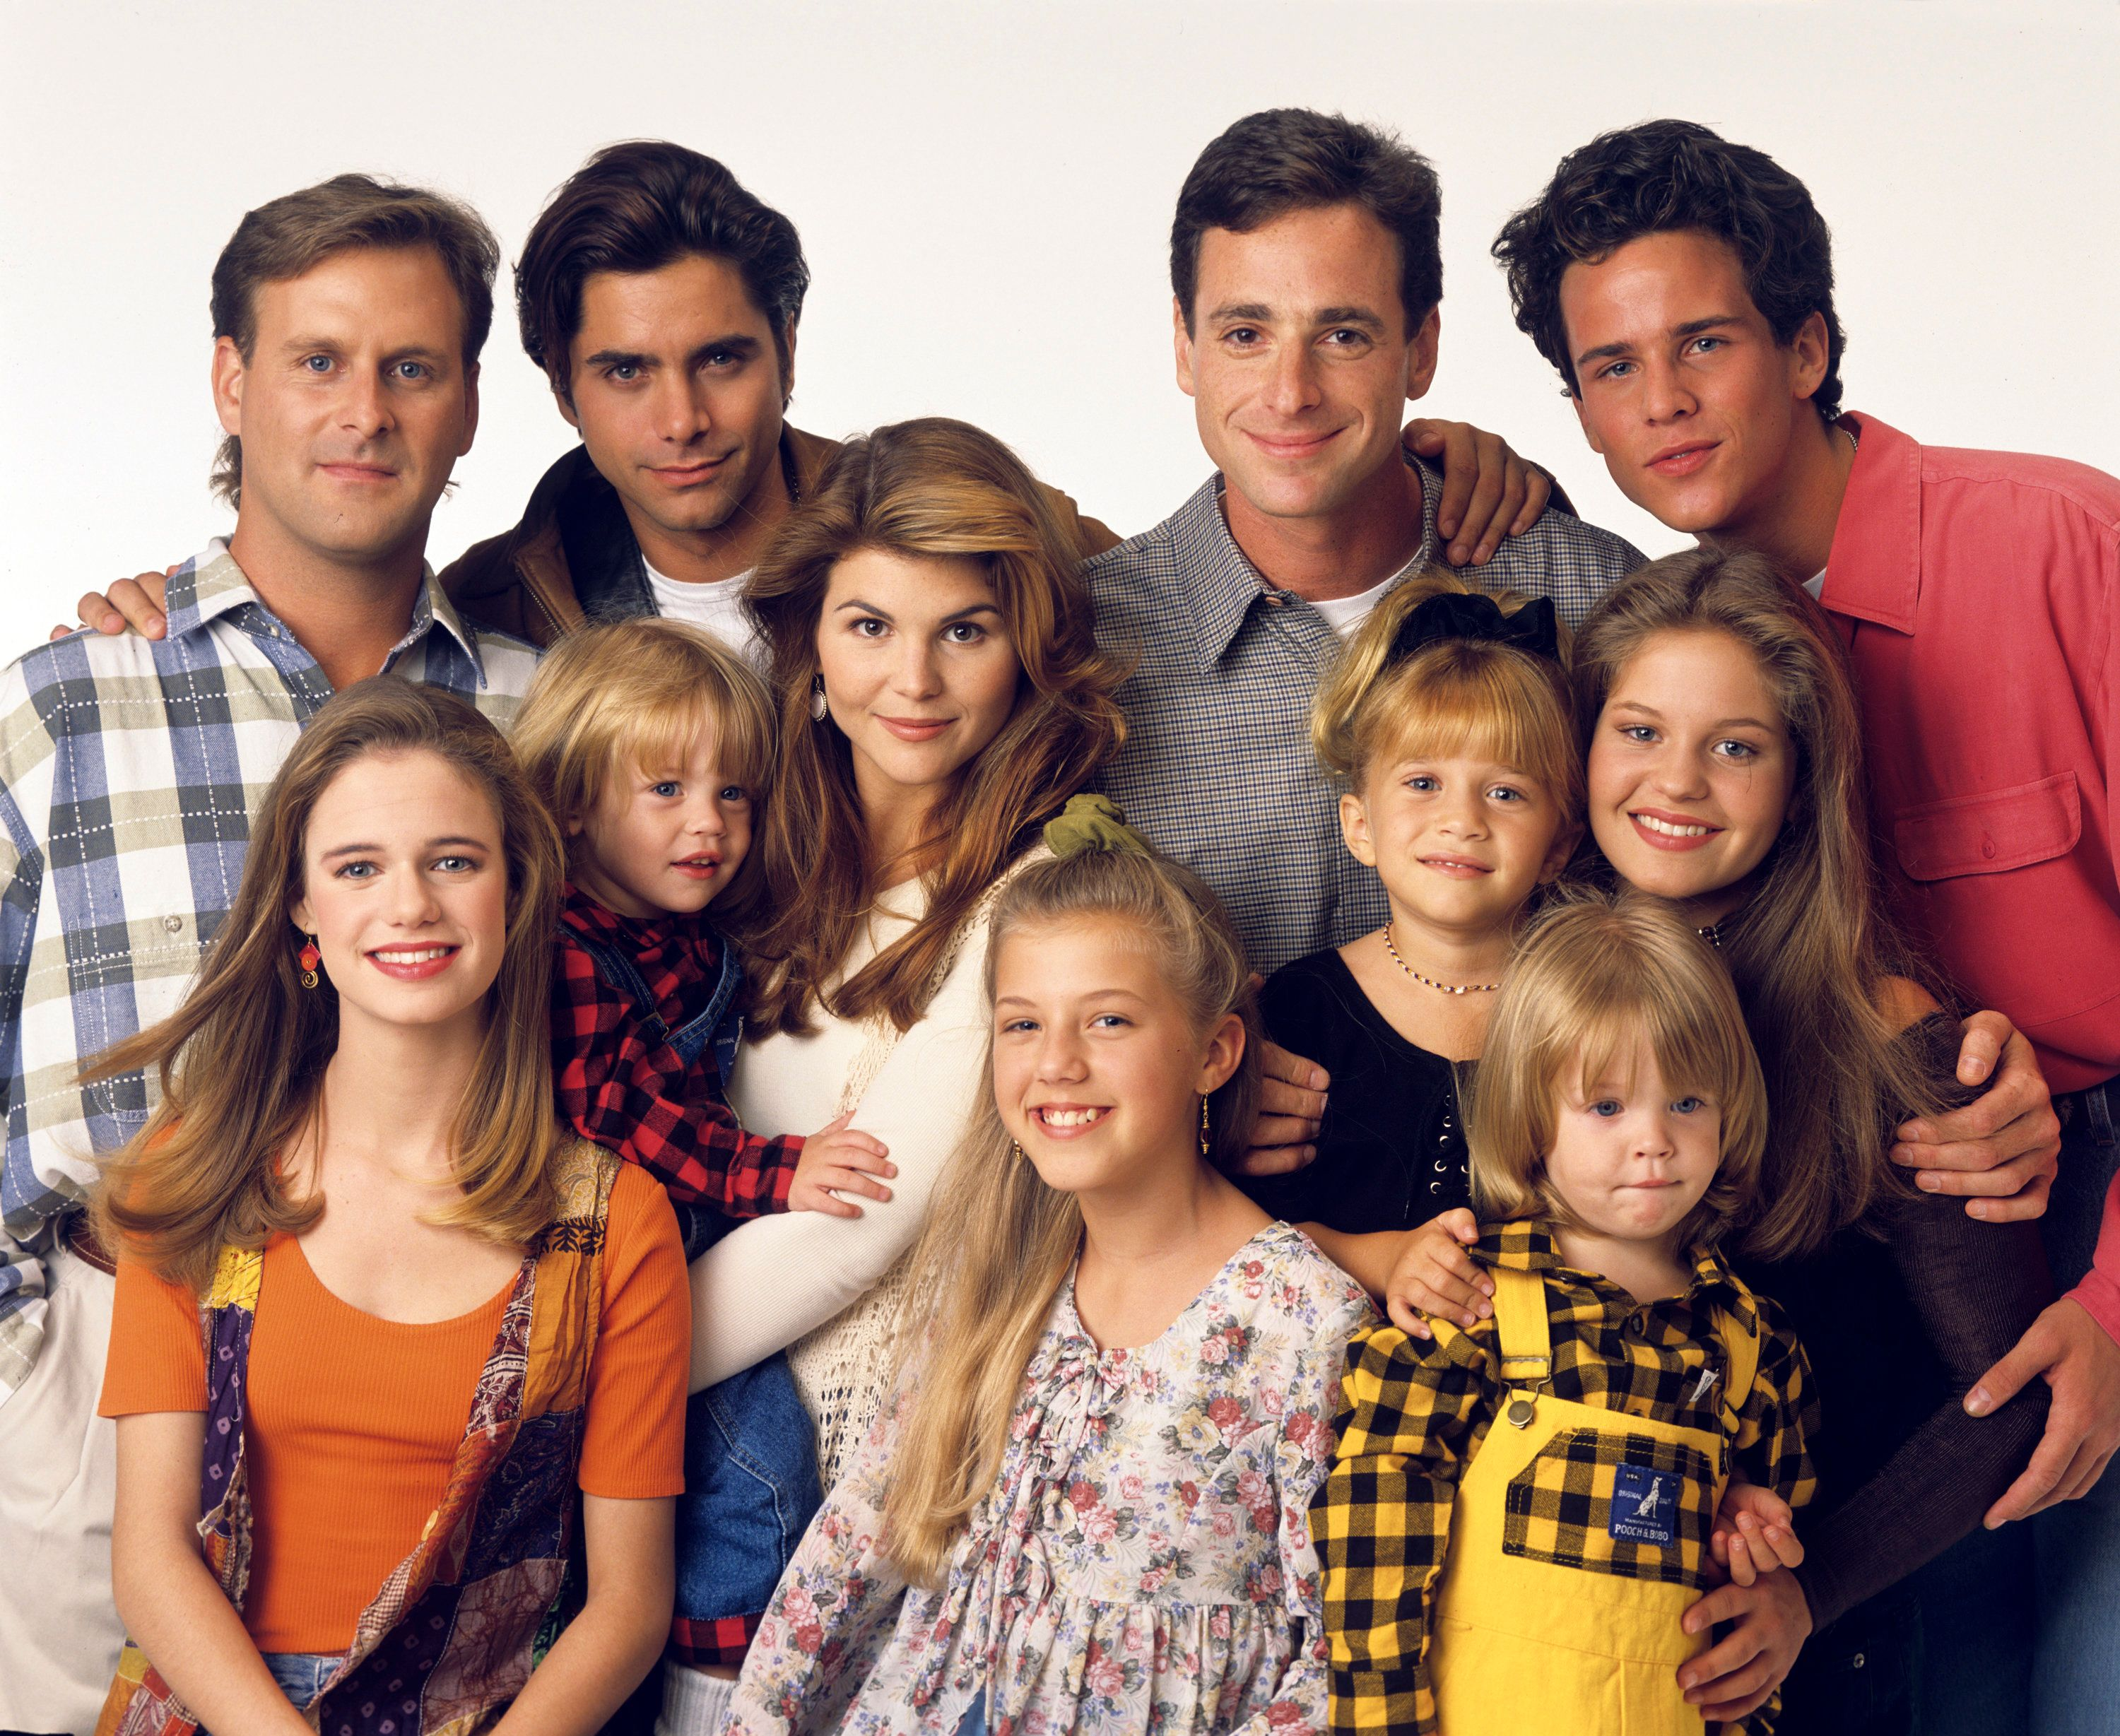 UNITED STATES - SEPTEMBER 14:  FULL HOUSE - Season Seven - Gallery - 9/14/93, Pictured, from left: Dave Coulier (Joey), Andrea Barber (Kimmy), John Stamos (Jesse), Blake Tuomy-Wilhoit (Nicky), Lori Loughlin (Rebecca), Jodie Sweetin (Stephanie), Bob Saget (Danny), Ashley Olsen (Michelle), Dylan Tuomy-Wilhoit (Alex), Candace Cameron (D.J.), Scott Weinger (Steve),  (Photo by Bob D'Amico/ABC via Getty Images)